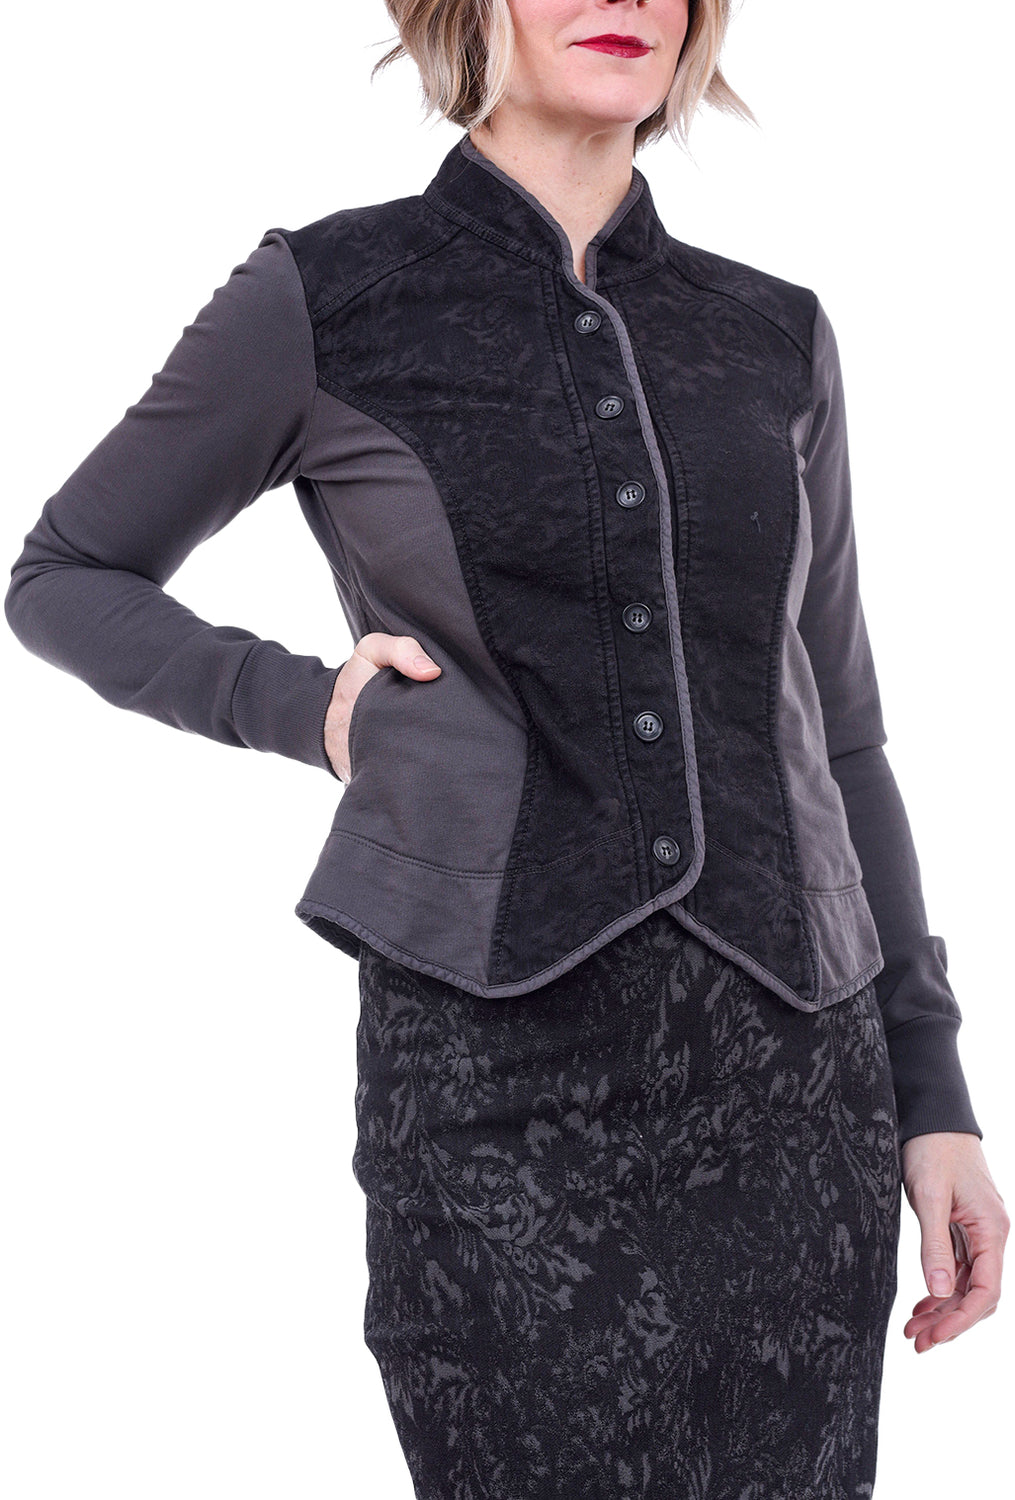 Prairie Underground Floral Co-Op Jacket, Graphite Gray